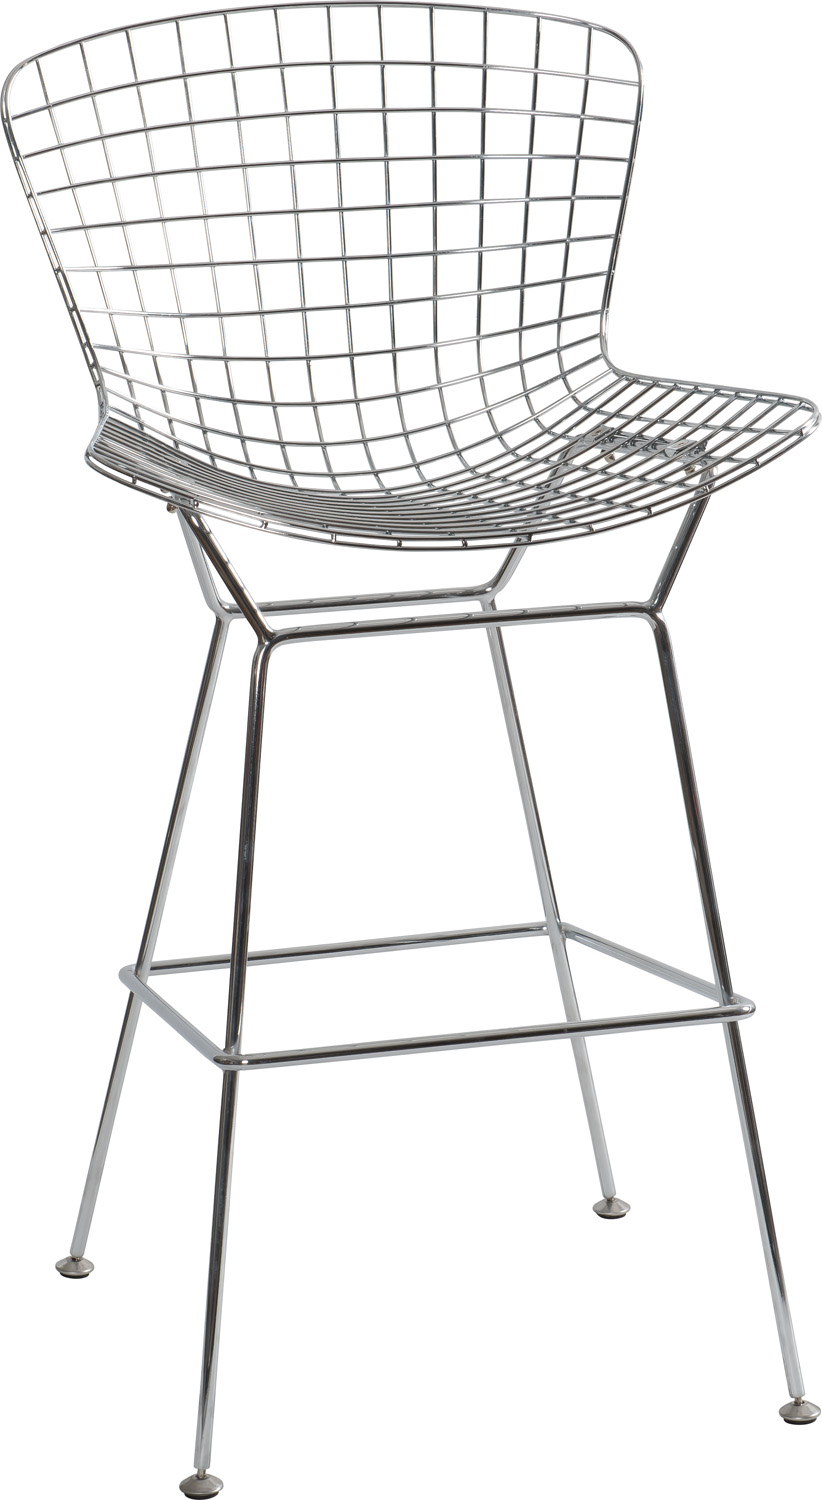 JSWMC-03 Low Back and High-heeled  Wired Metal Leisure Chair Without Armrest